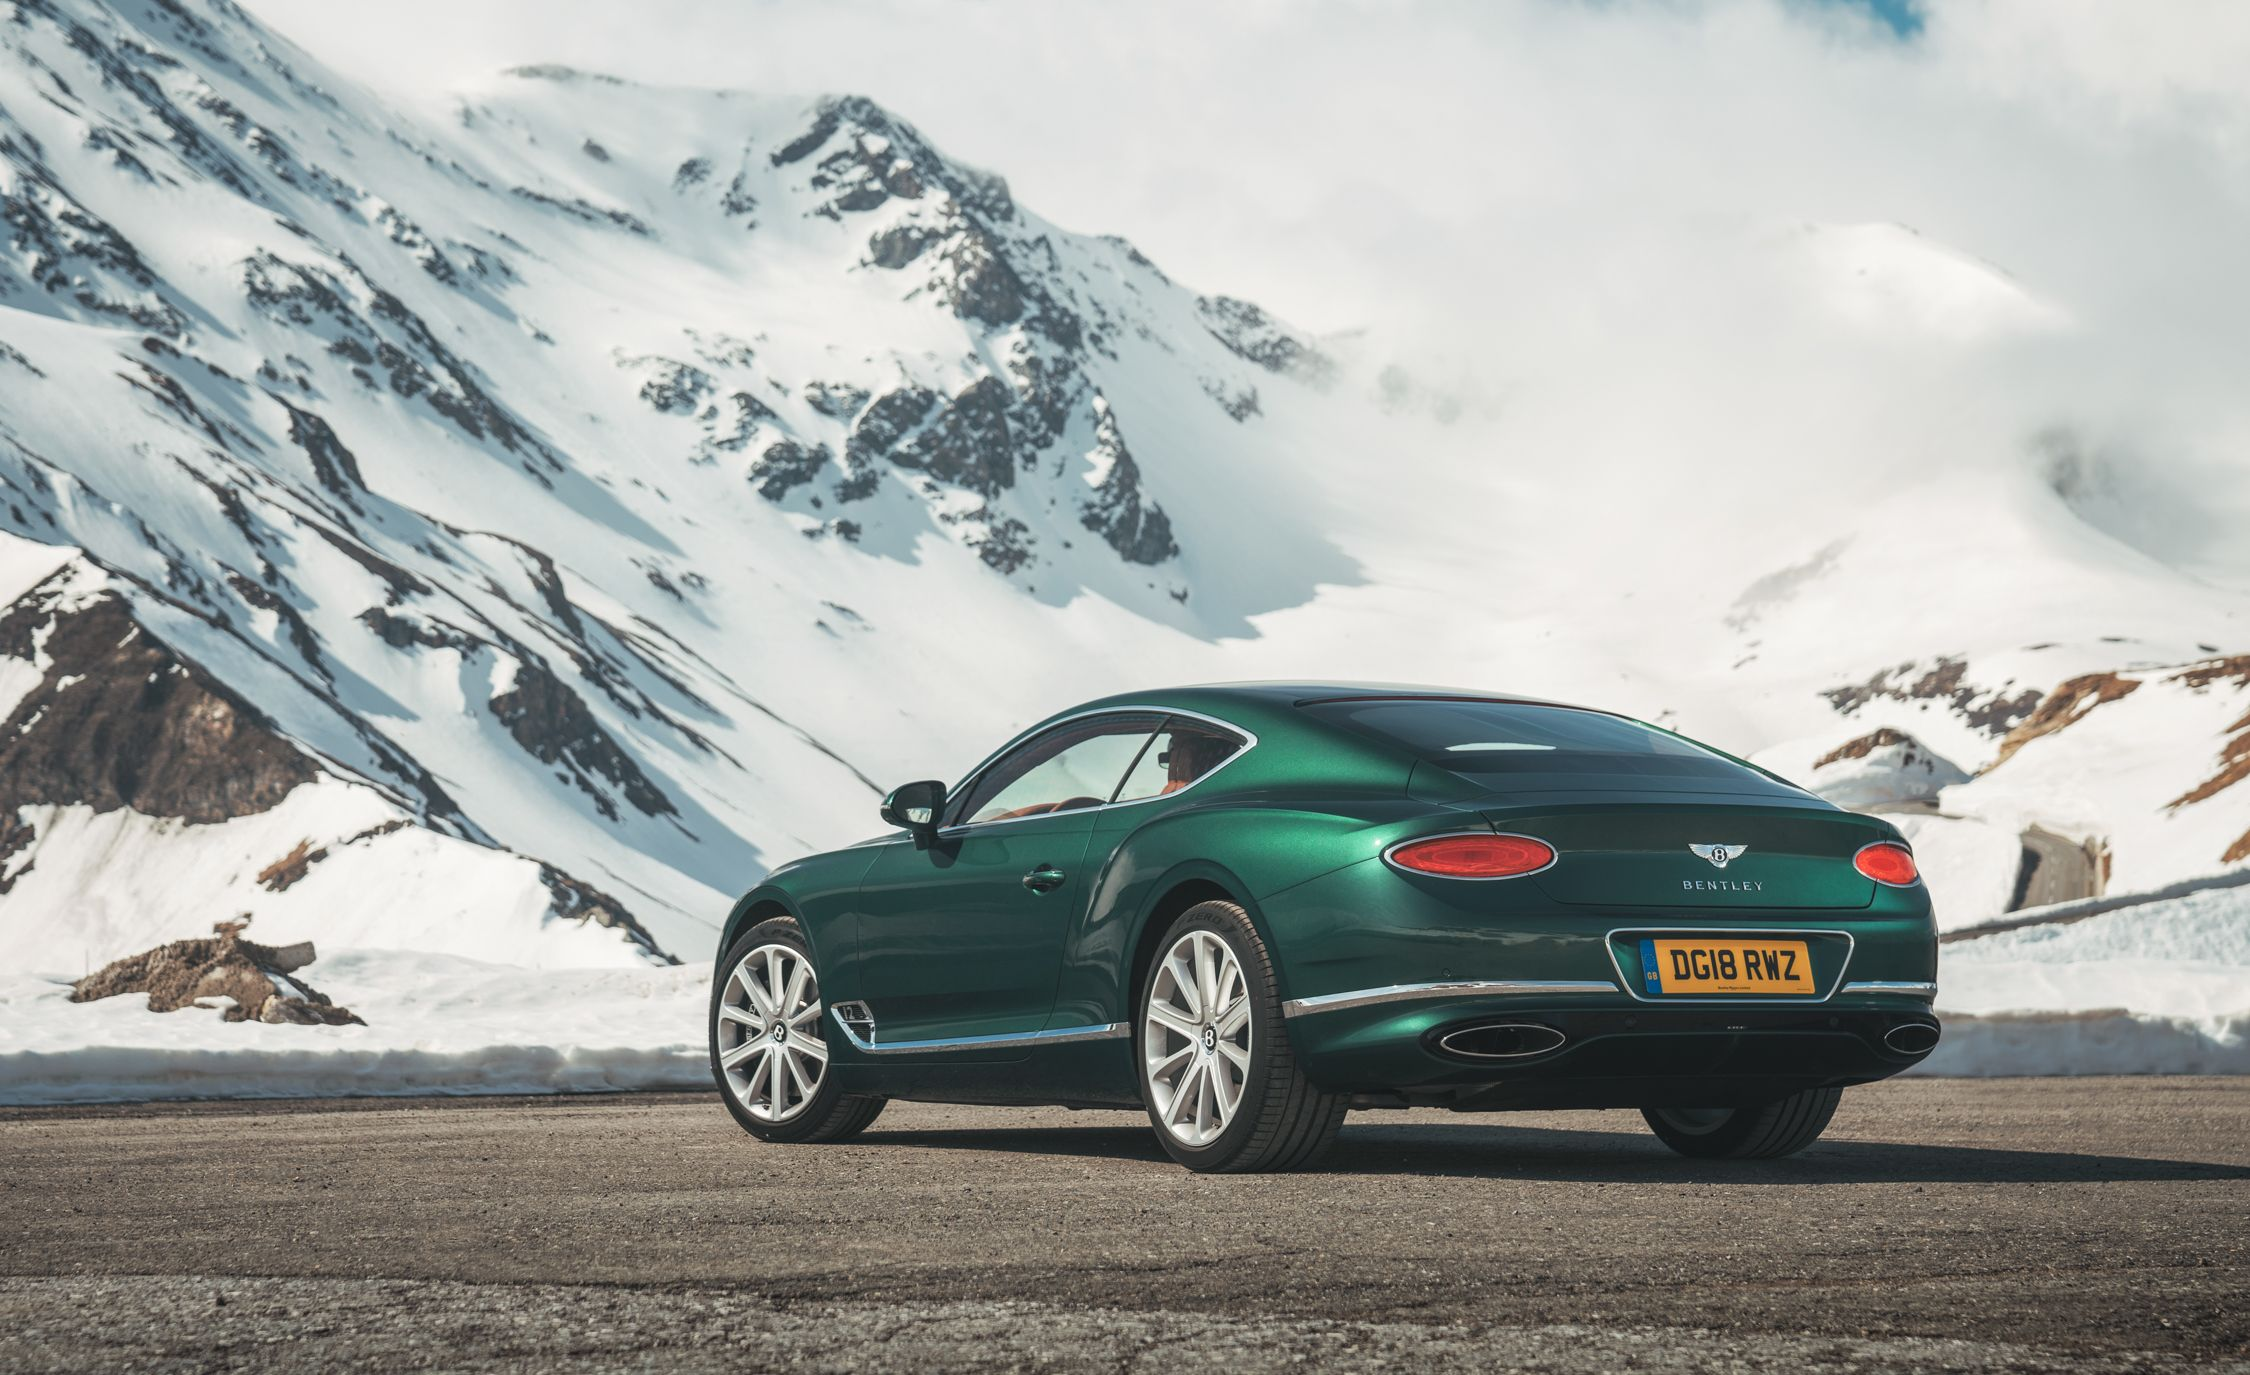 2020 Bentley Continental GT Reviews | Bentley Continental GT